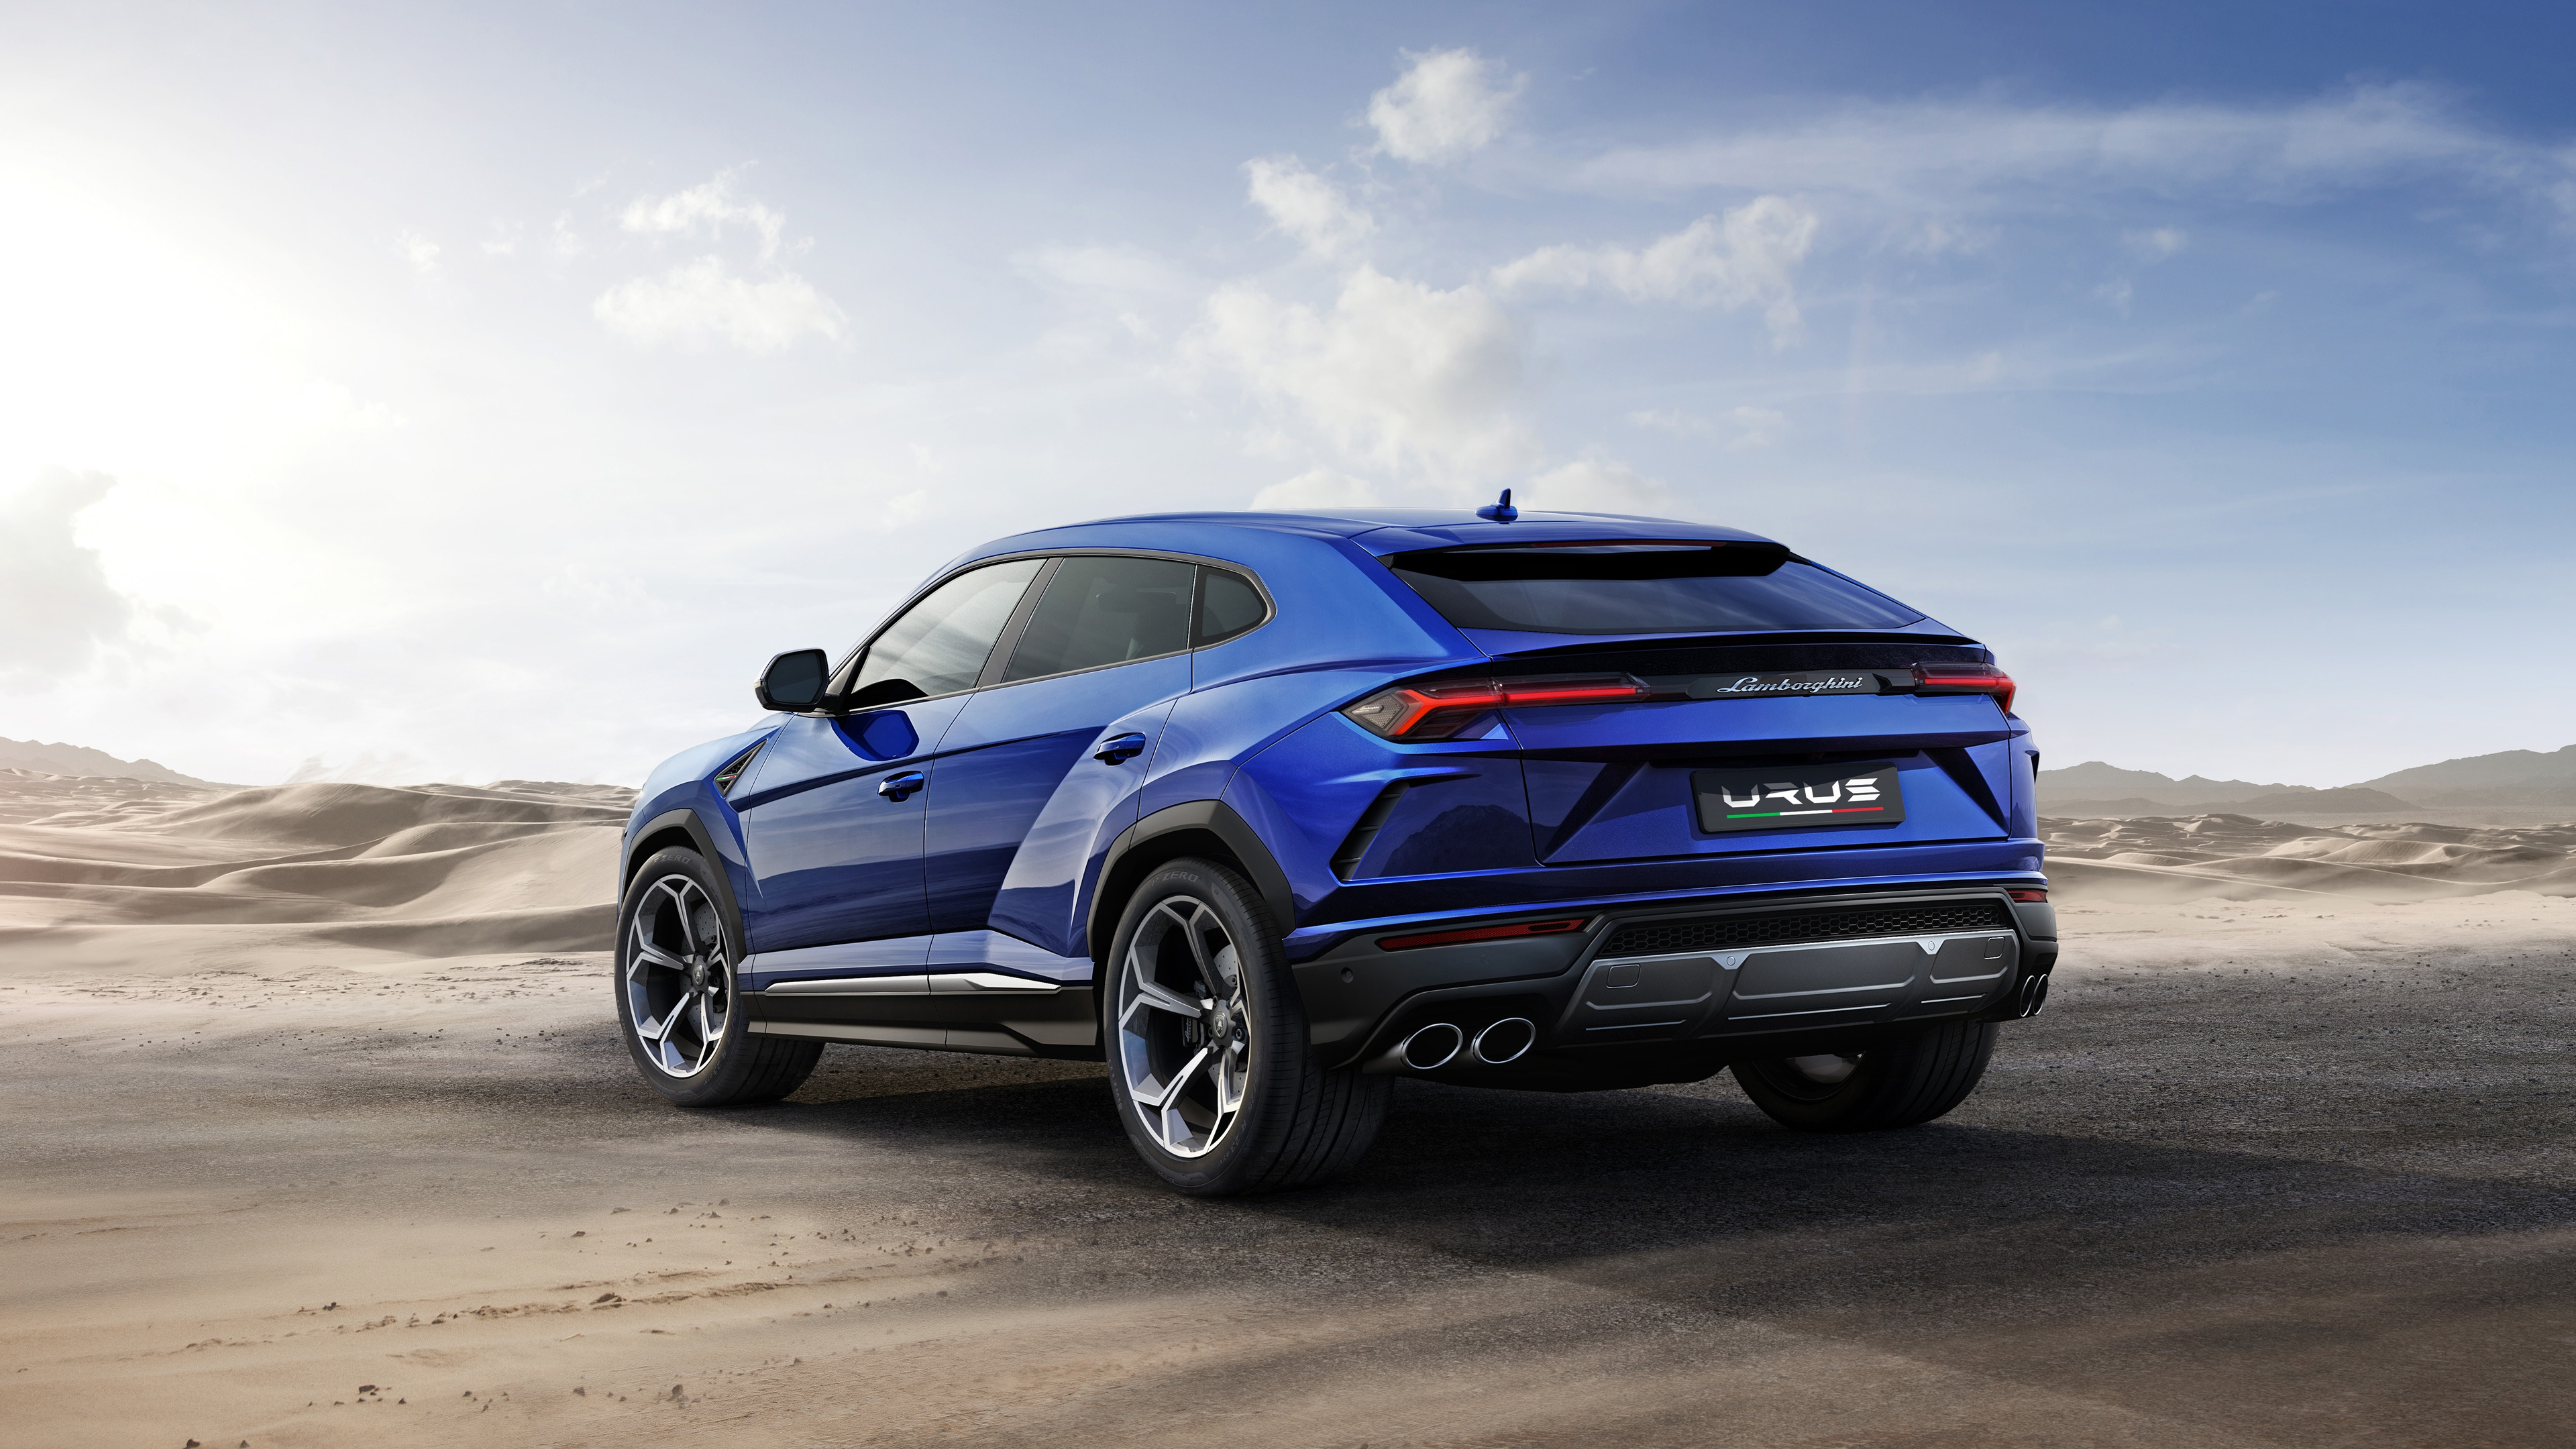 19 lamborghini urus hd wallpapers | background images - wallpaper abyss